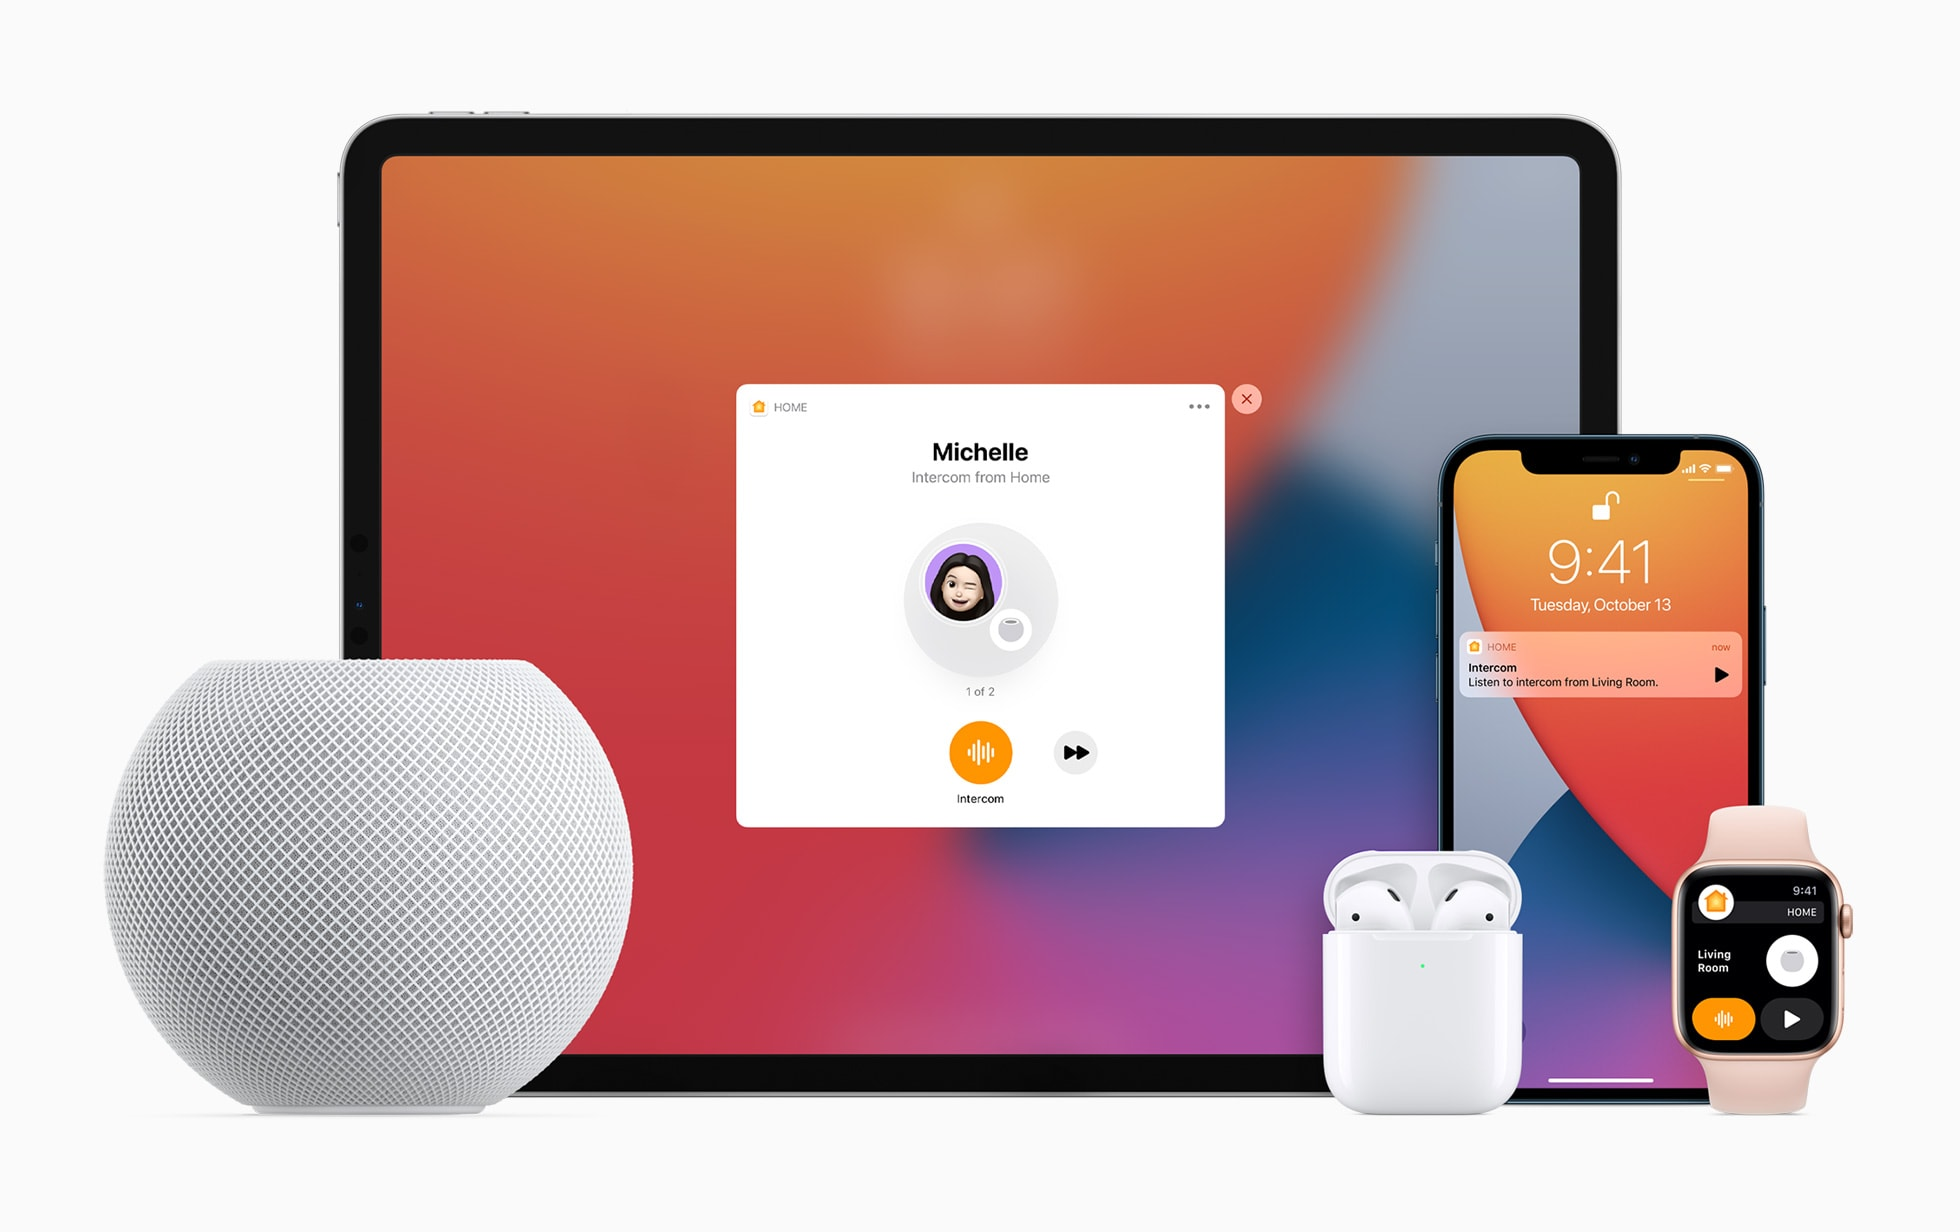 If you use multiple Apple devices, HomePod mini is the best smart speaker for you.